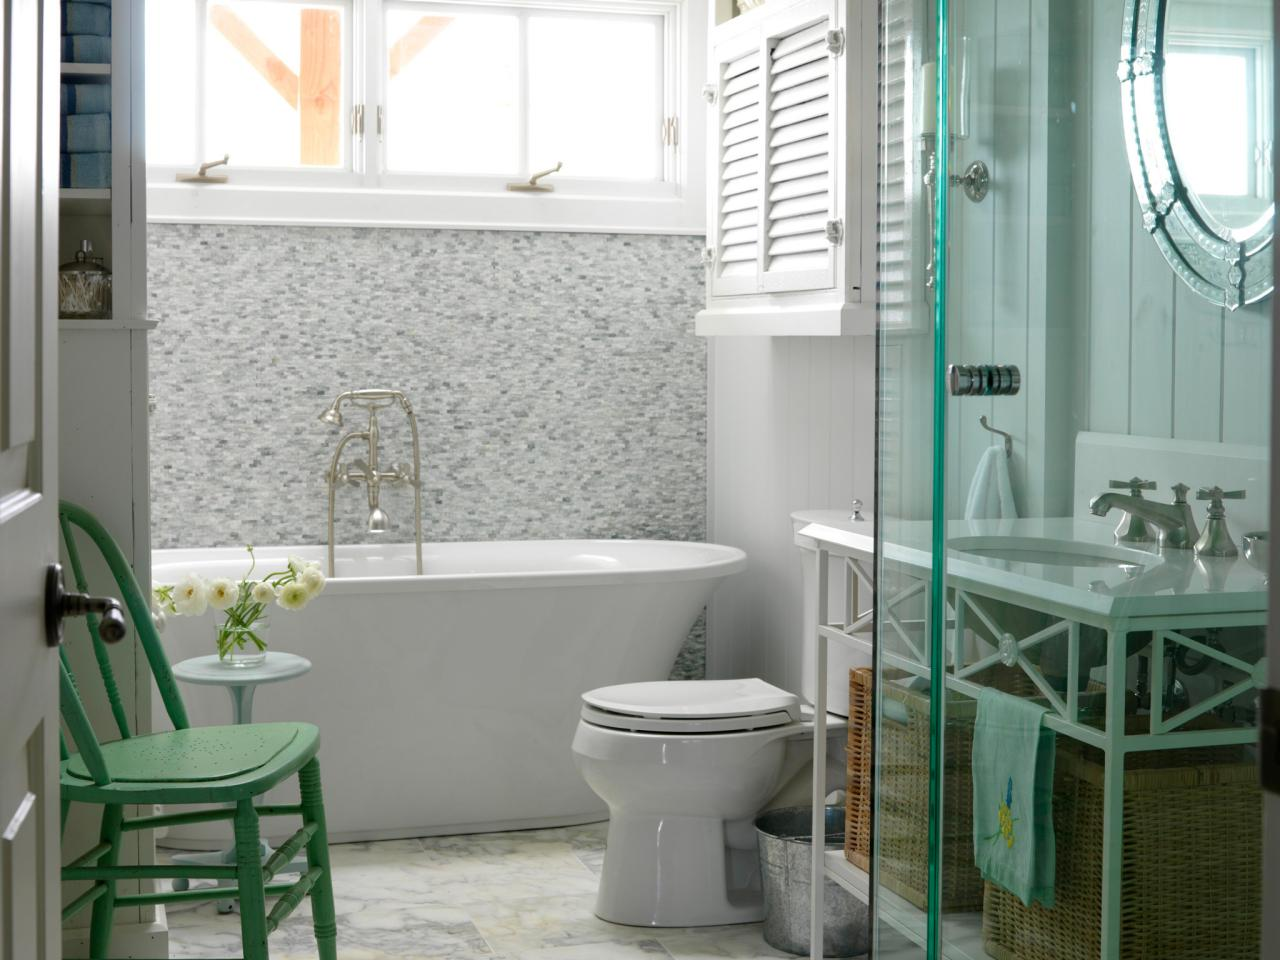 HSSUH103_bathroom-marble-floor-slipper-tub-venetian-mirror_s4x3.jpg.rend.hgtvcom.1280.960